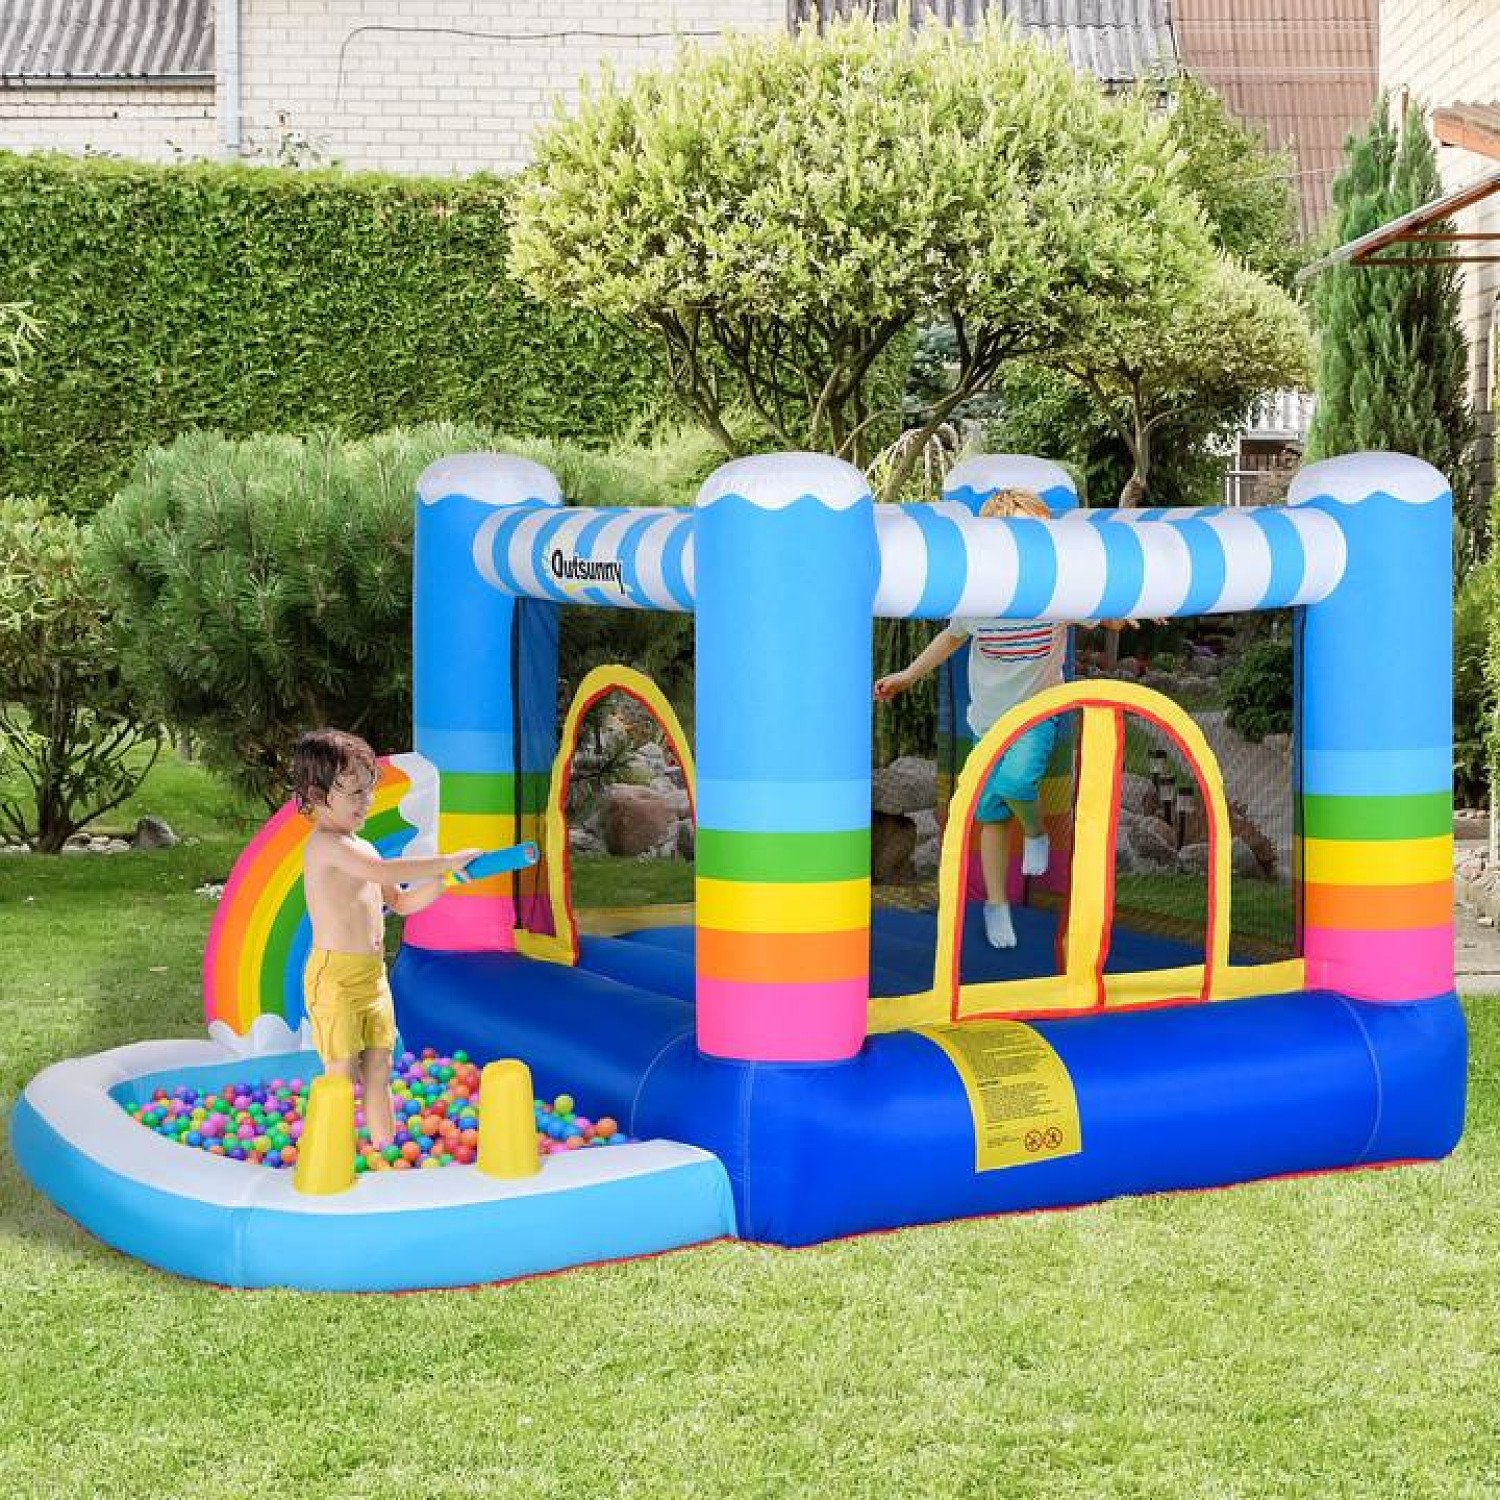 Kids Bouncy Castle House Inflatable Trampoline Water Pool 2 in 1 with Blower for Kids Age 3-12 Free